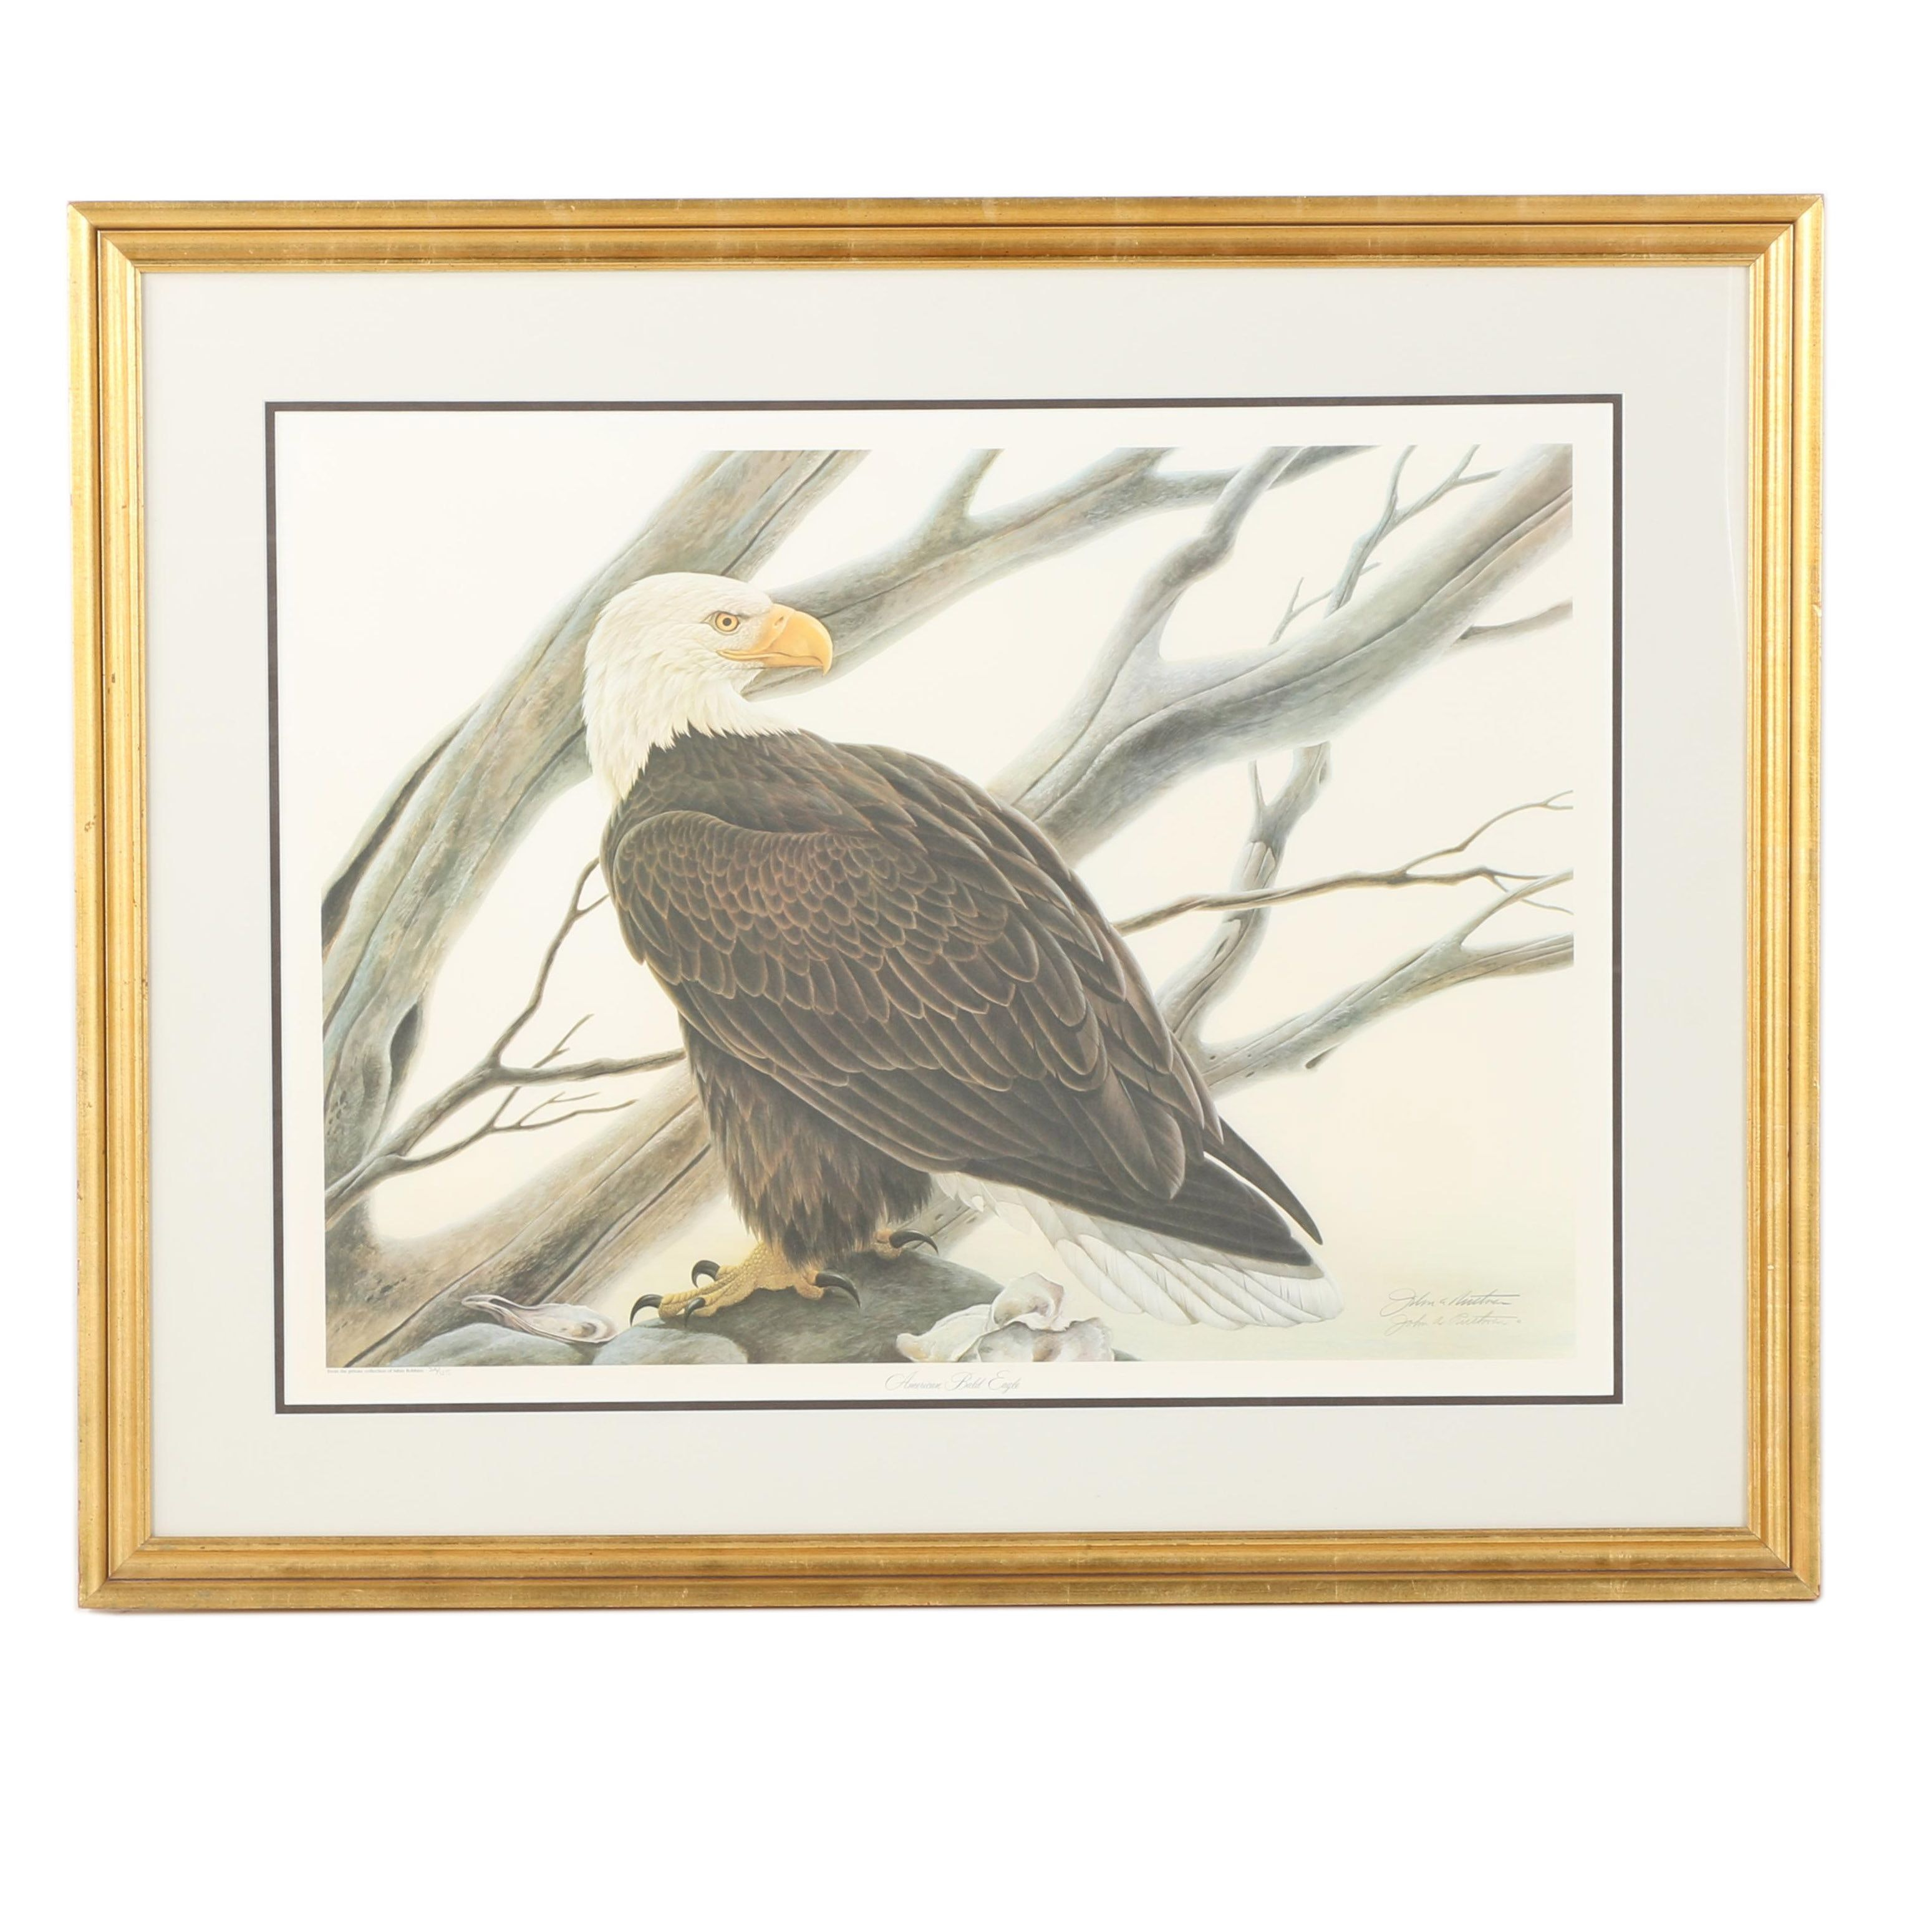 """Limited Edition Offset Lithograph by John Ruthven """"American Bald Eagle"""""""